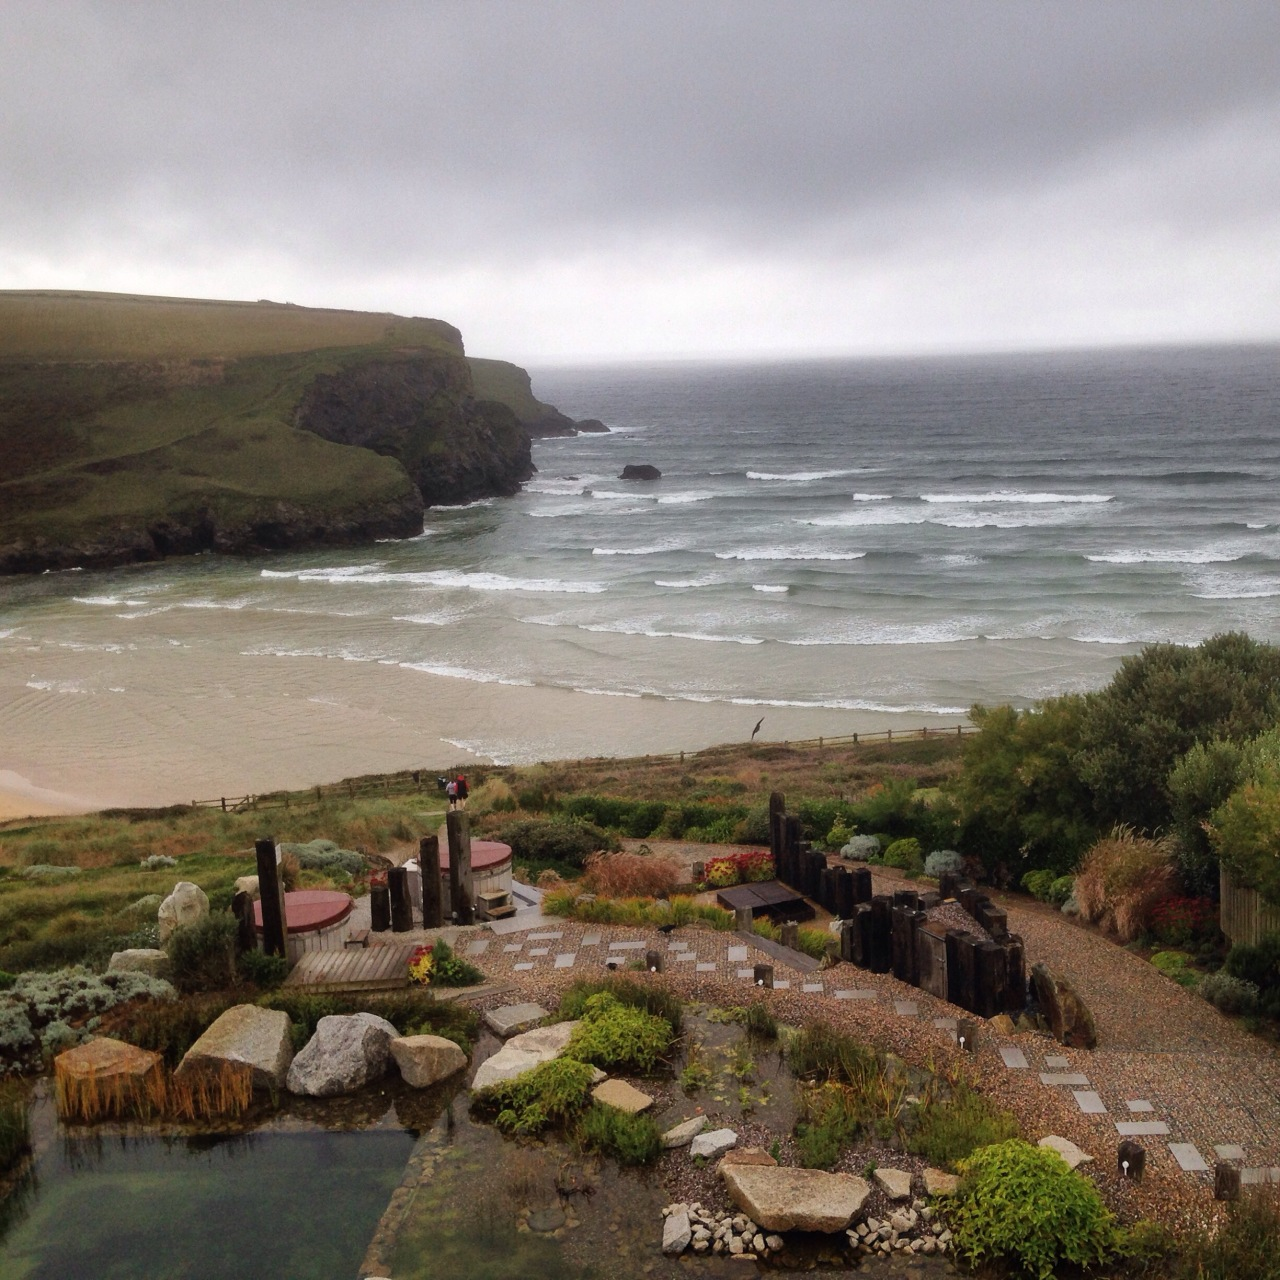 Top 5 things to do in Mawgan Porth